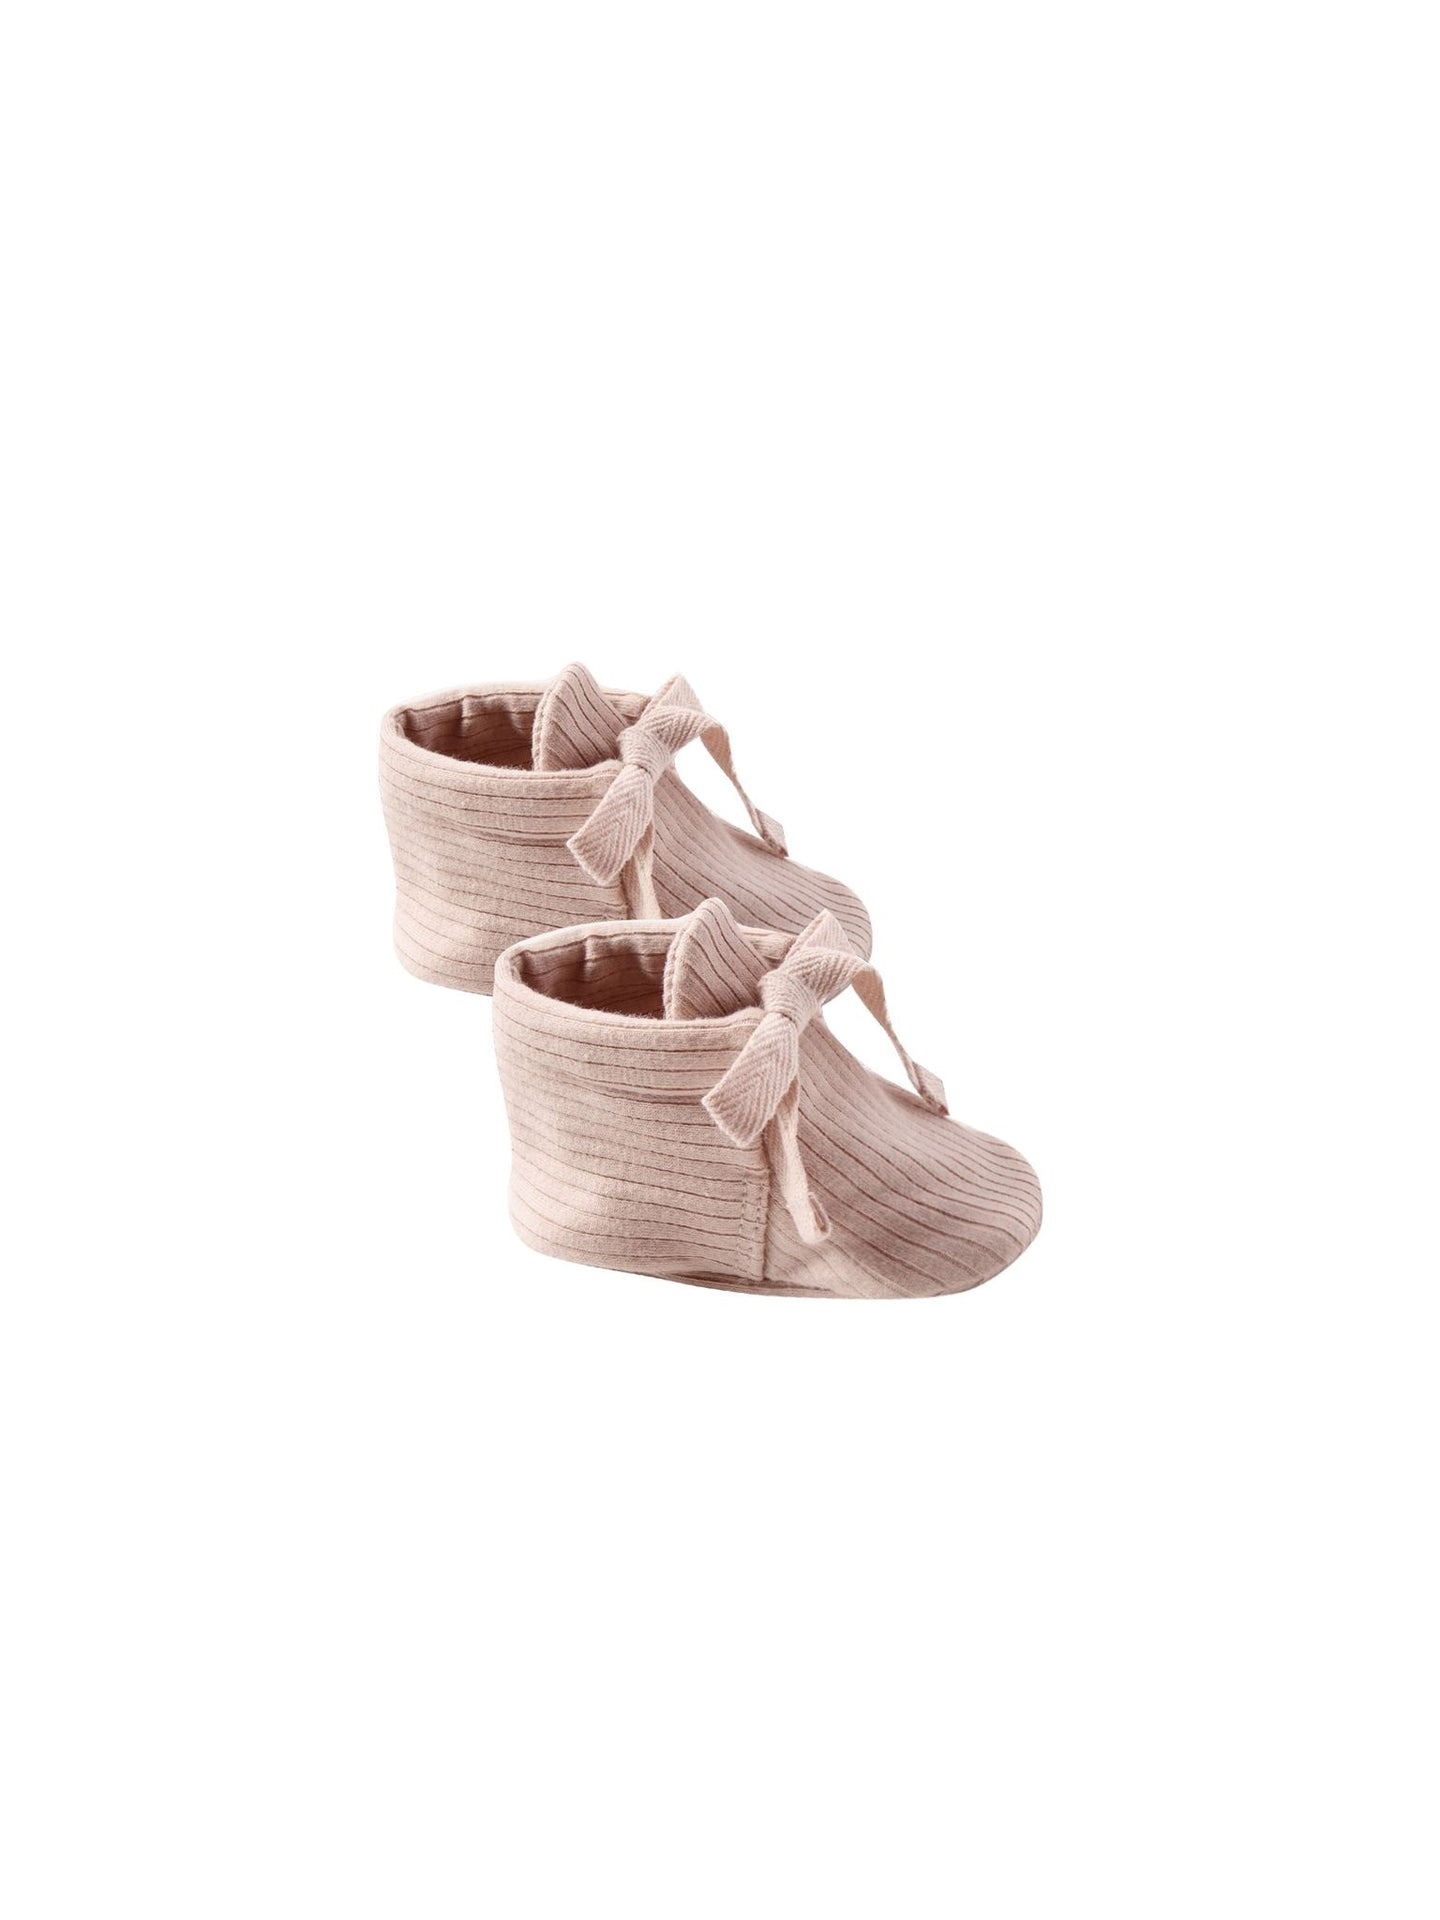 Quincy Mae - Organic Ribbed Baby Booties - Petal